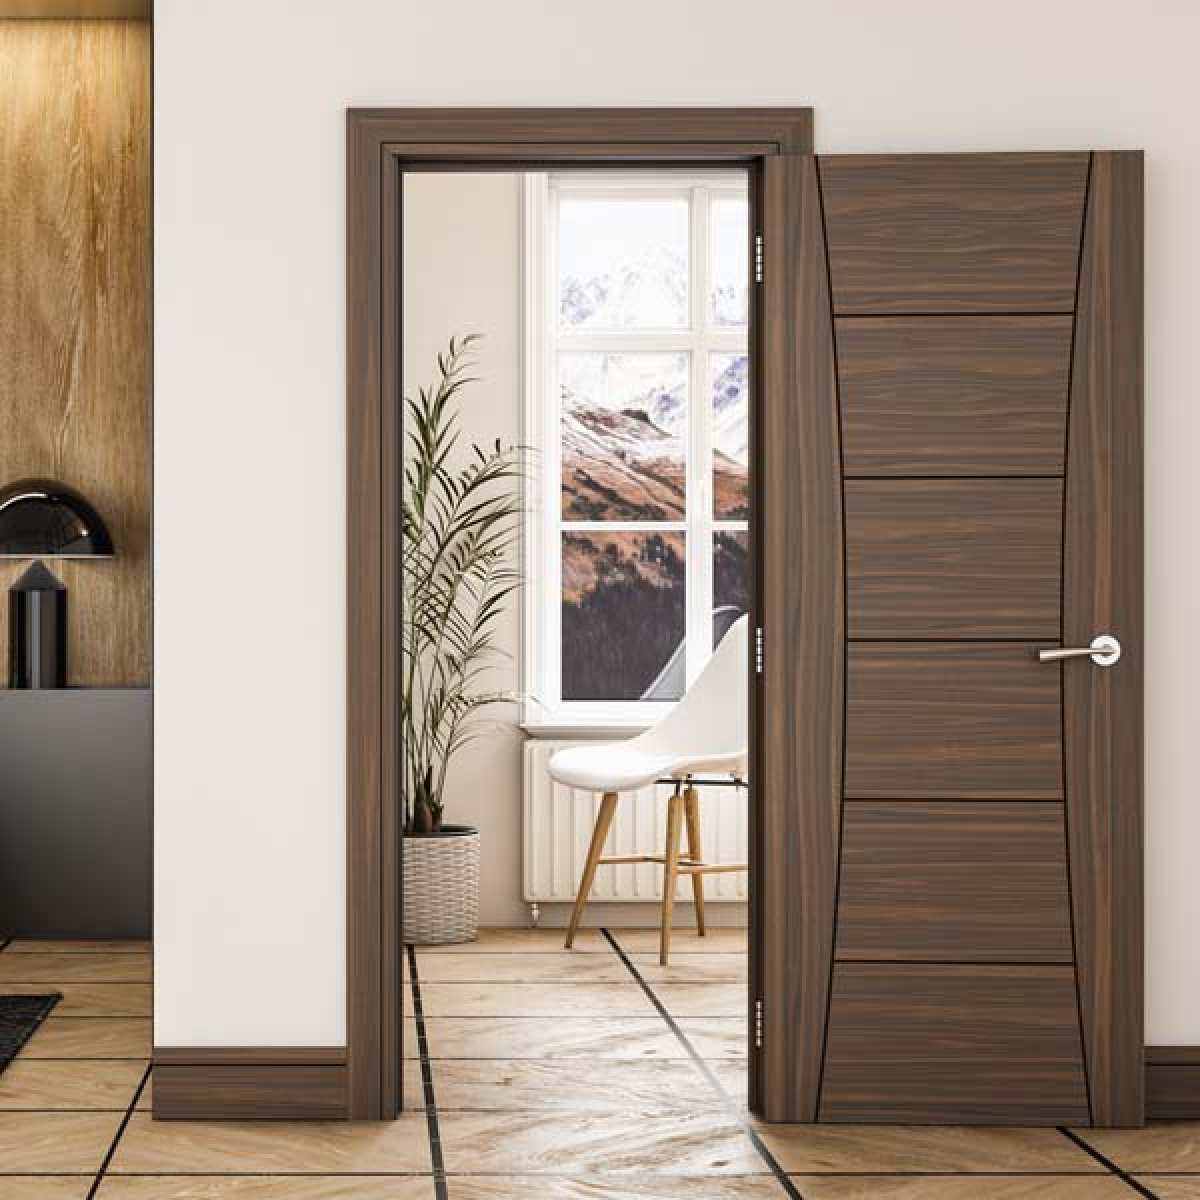 pamplona walnut lifestyle websters Image by Websters Timber